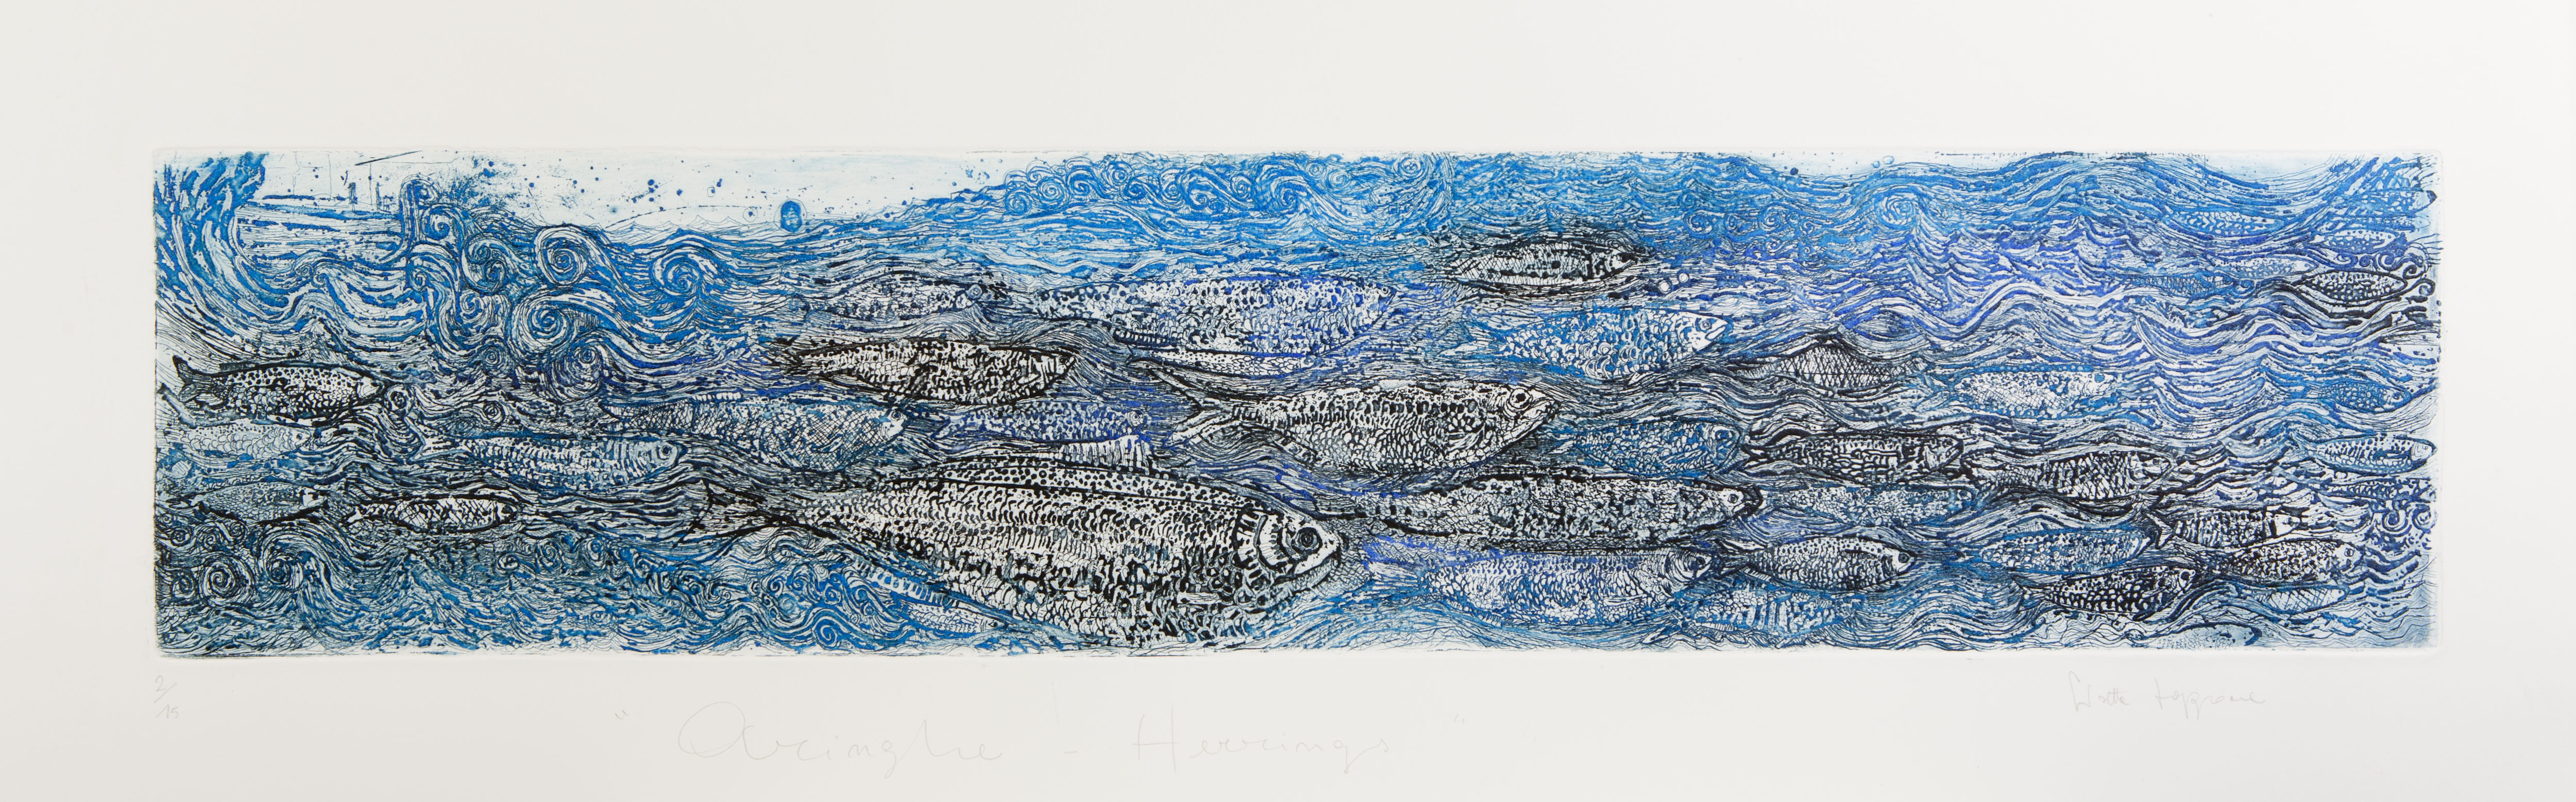 S.Zappone, Herrings as Water body, etching, sugar-lift, 30x90cm